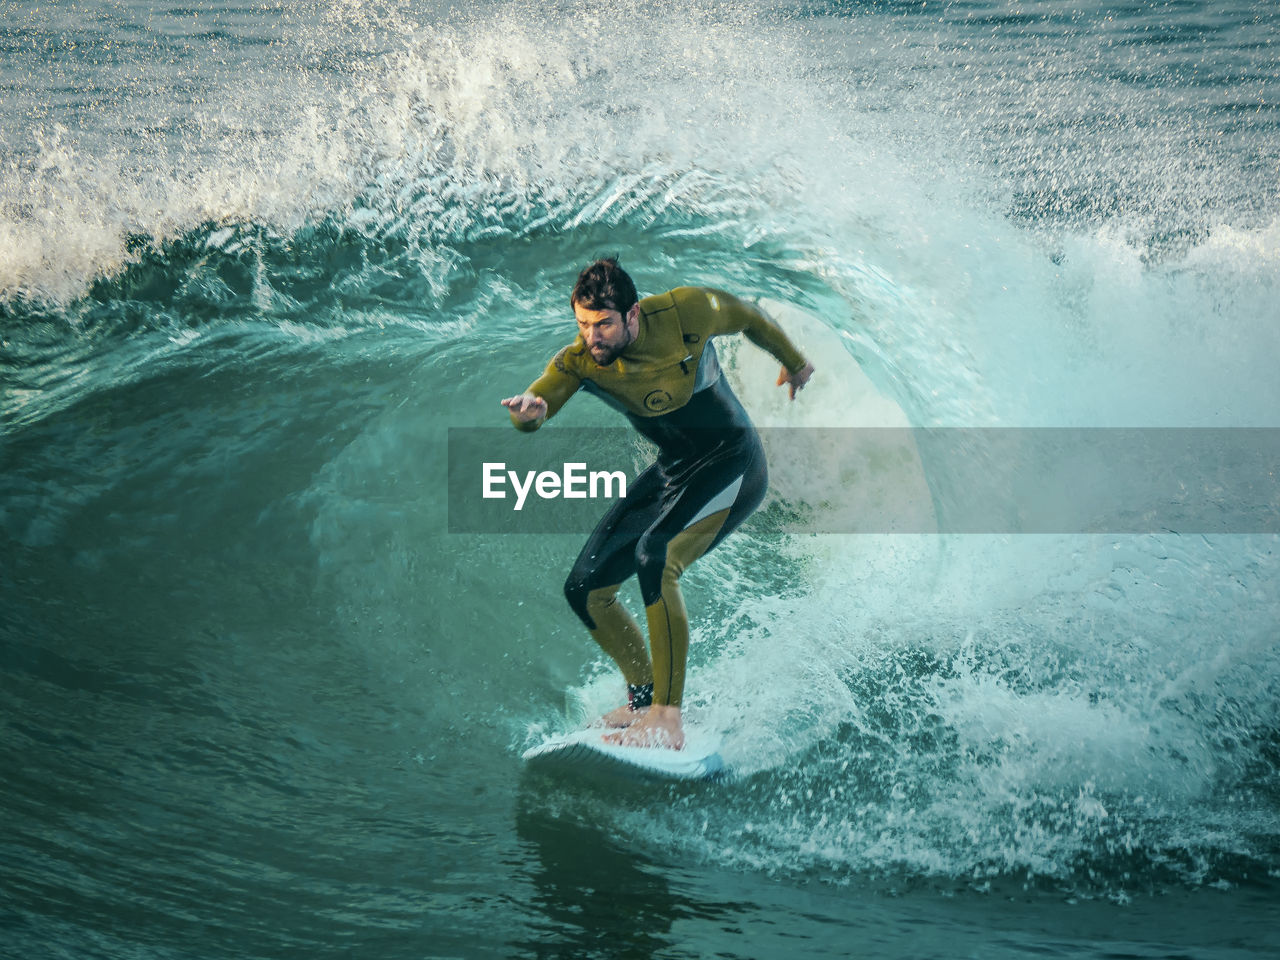 motion, water, splashing, one person, speed, sea, wave, waterfront, leisure activity, day, men, real people, adventure, lifestyles, surfing, nature, outdoors, extreme sports, risk, sport, force, power in nature, full length, one man only, young adult, adult, adults only, people